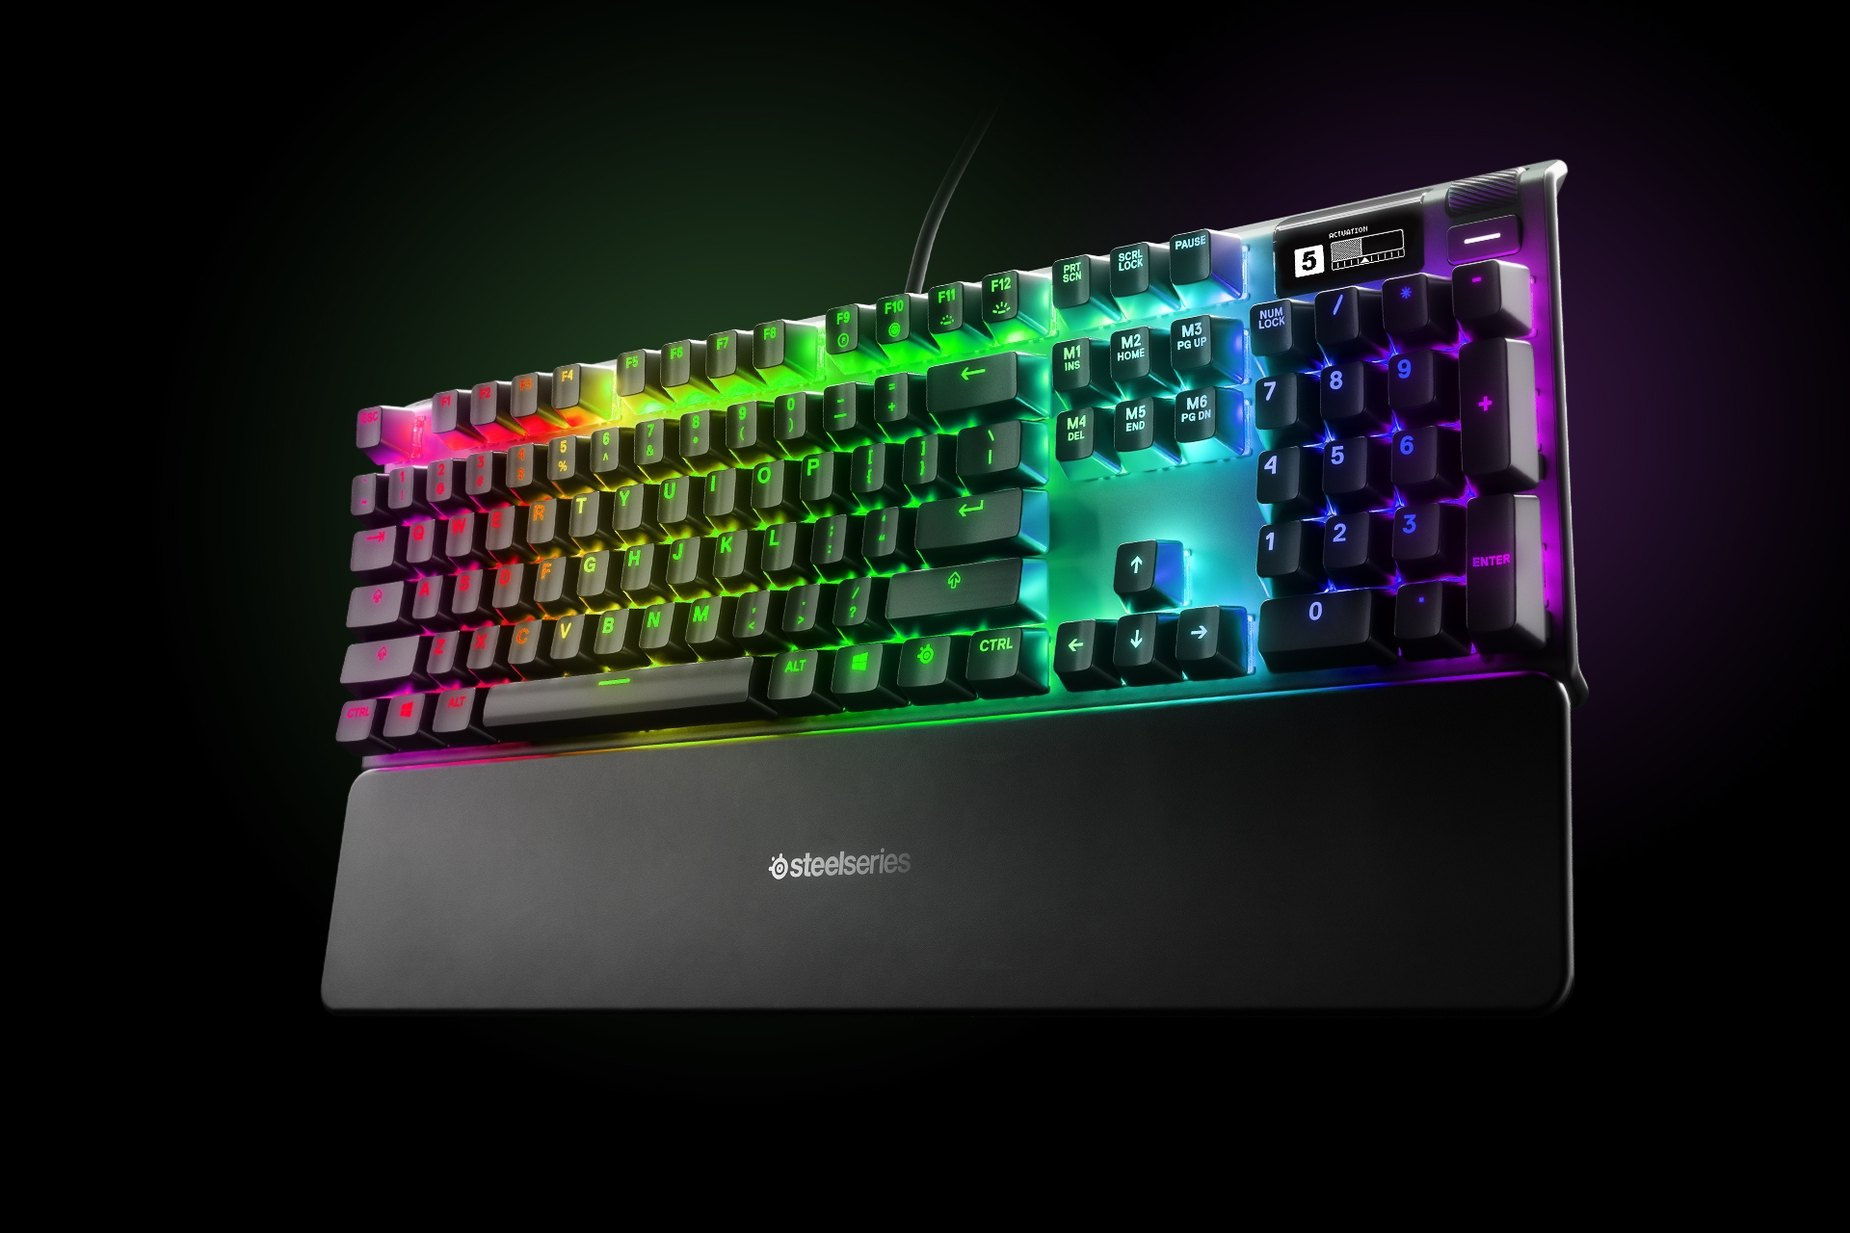 German - Apex Pro gaming keyboard with the illumination lit up on dark background, also shows the OLED screen and controls used to change settings, switch actuation, and adjust audio